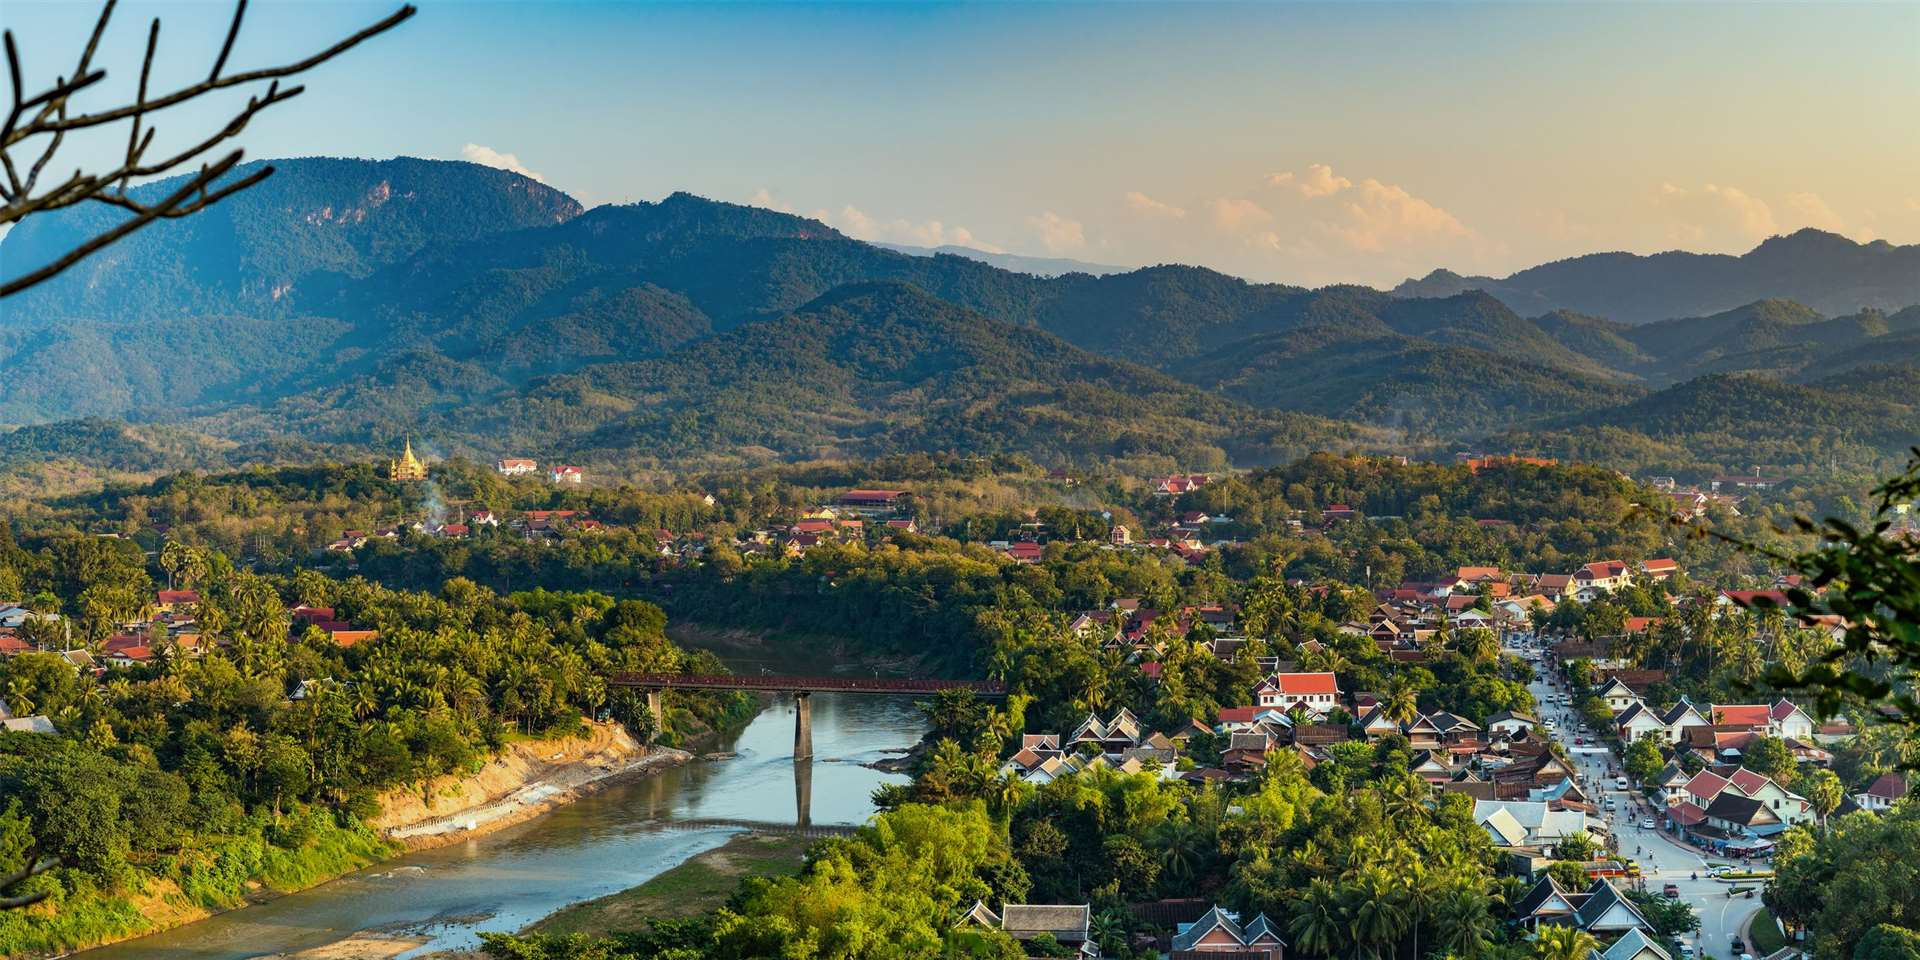 There really is something for everyone at Luang Prabang in Laos, whether you're interested in communing with nature, learning more about local culture or walking through beautiful temples.